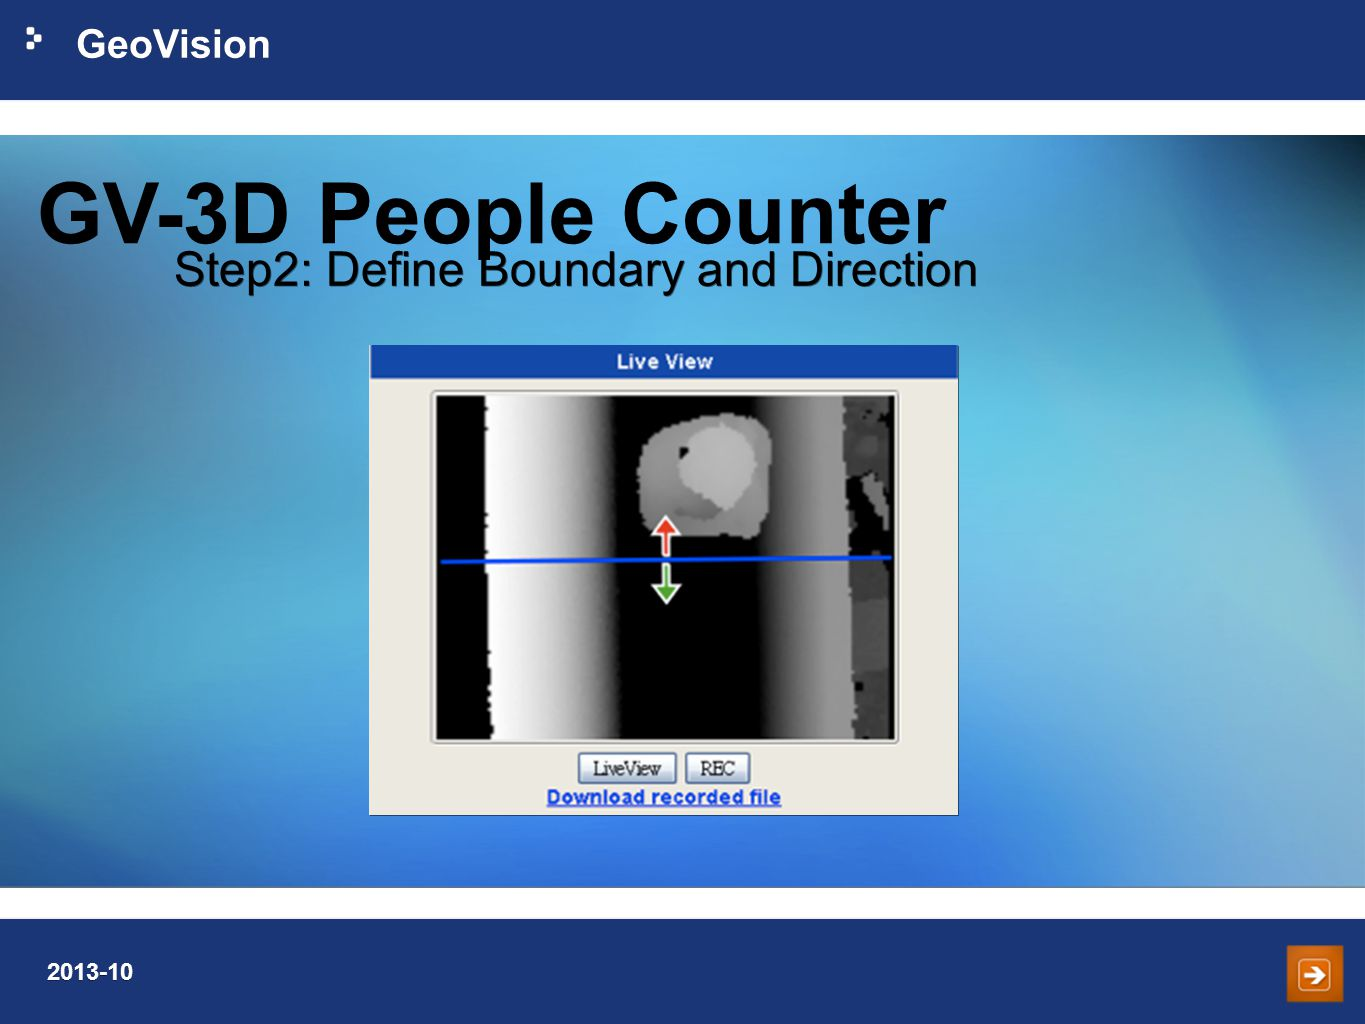 GV-3D People Counter Step2: Define Boundary and Direction